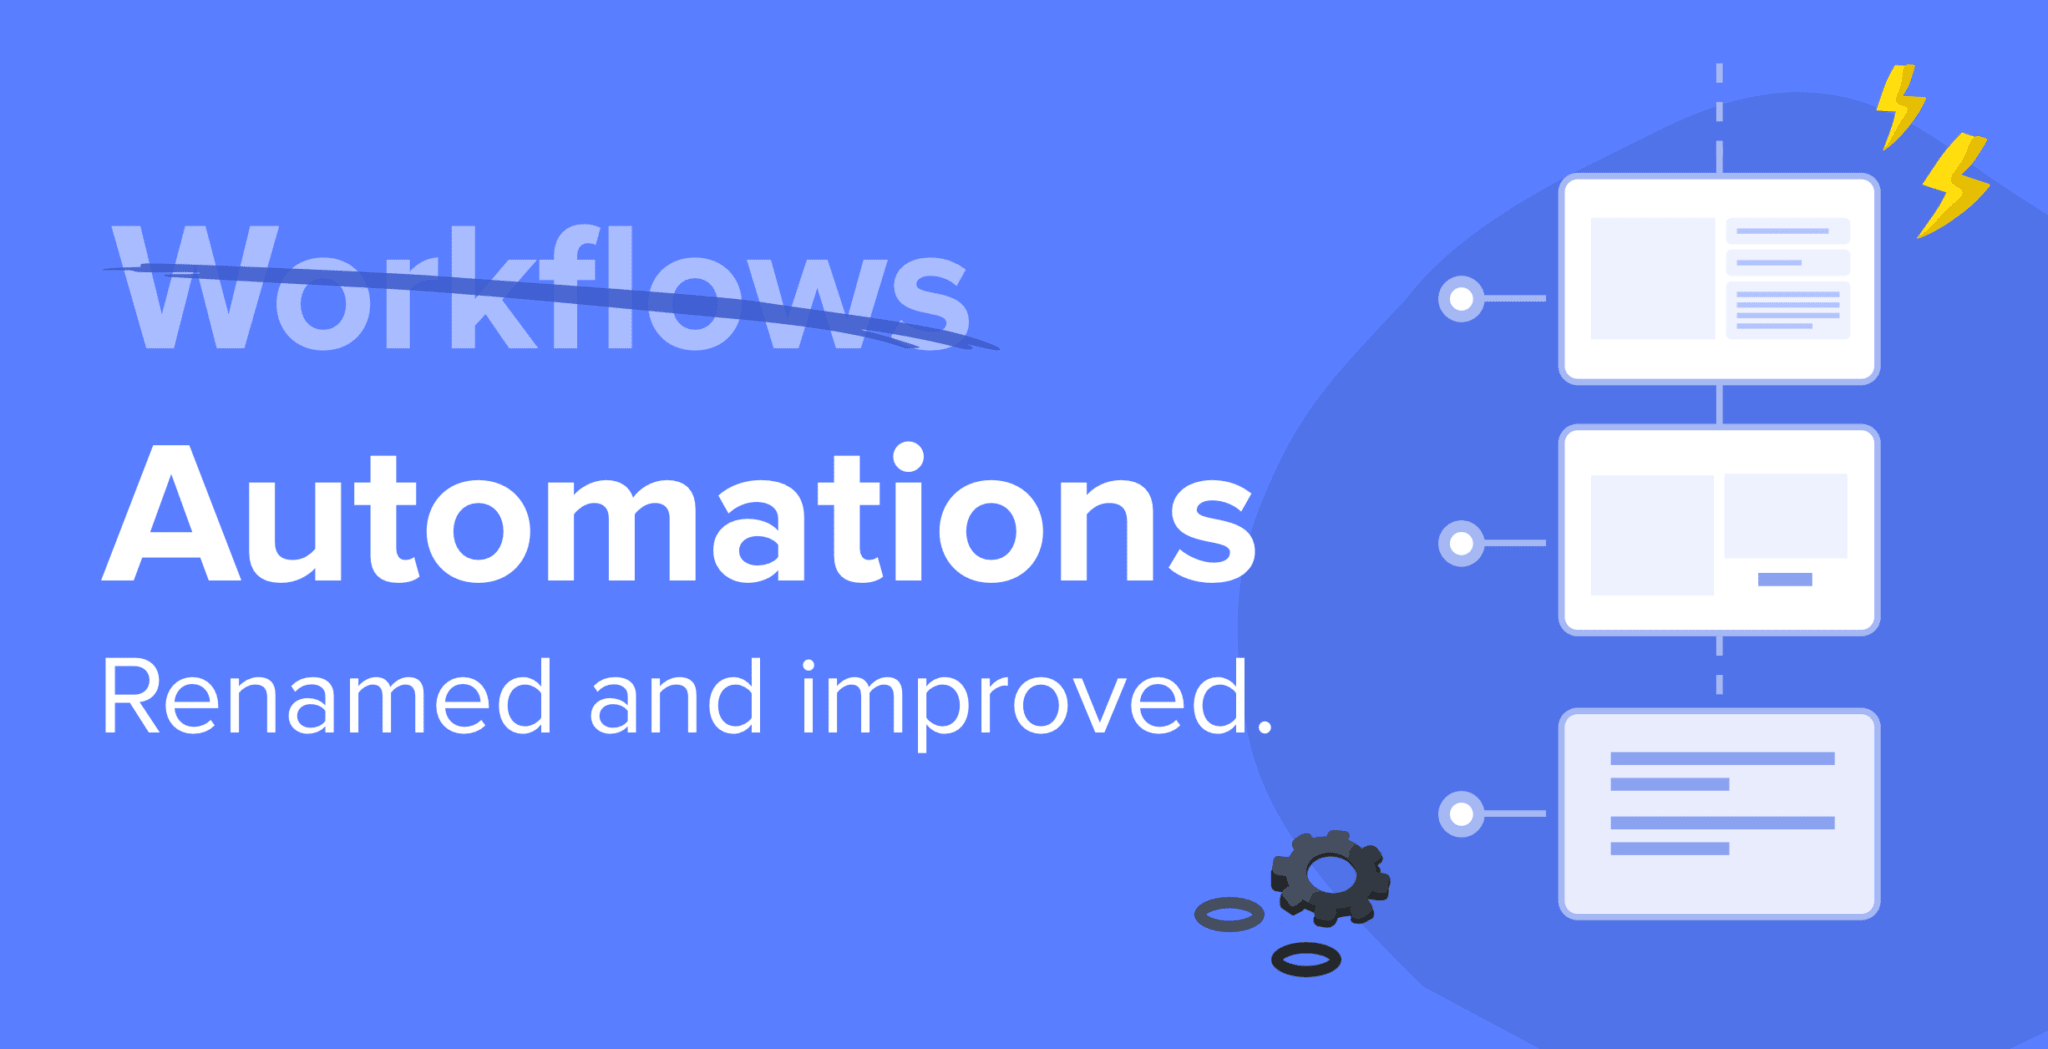 Automations renamed and improved